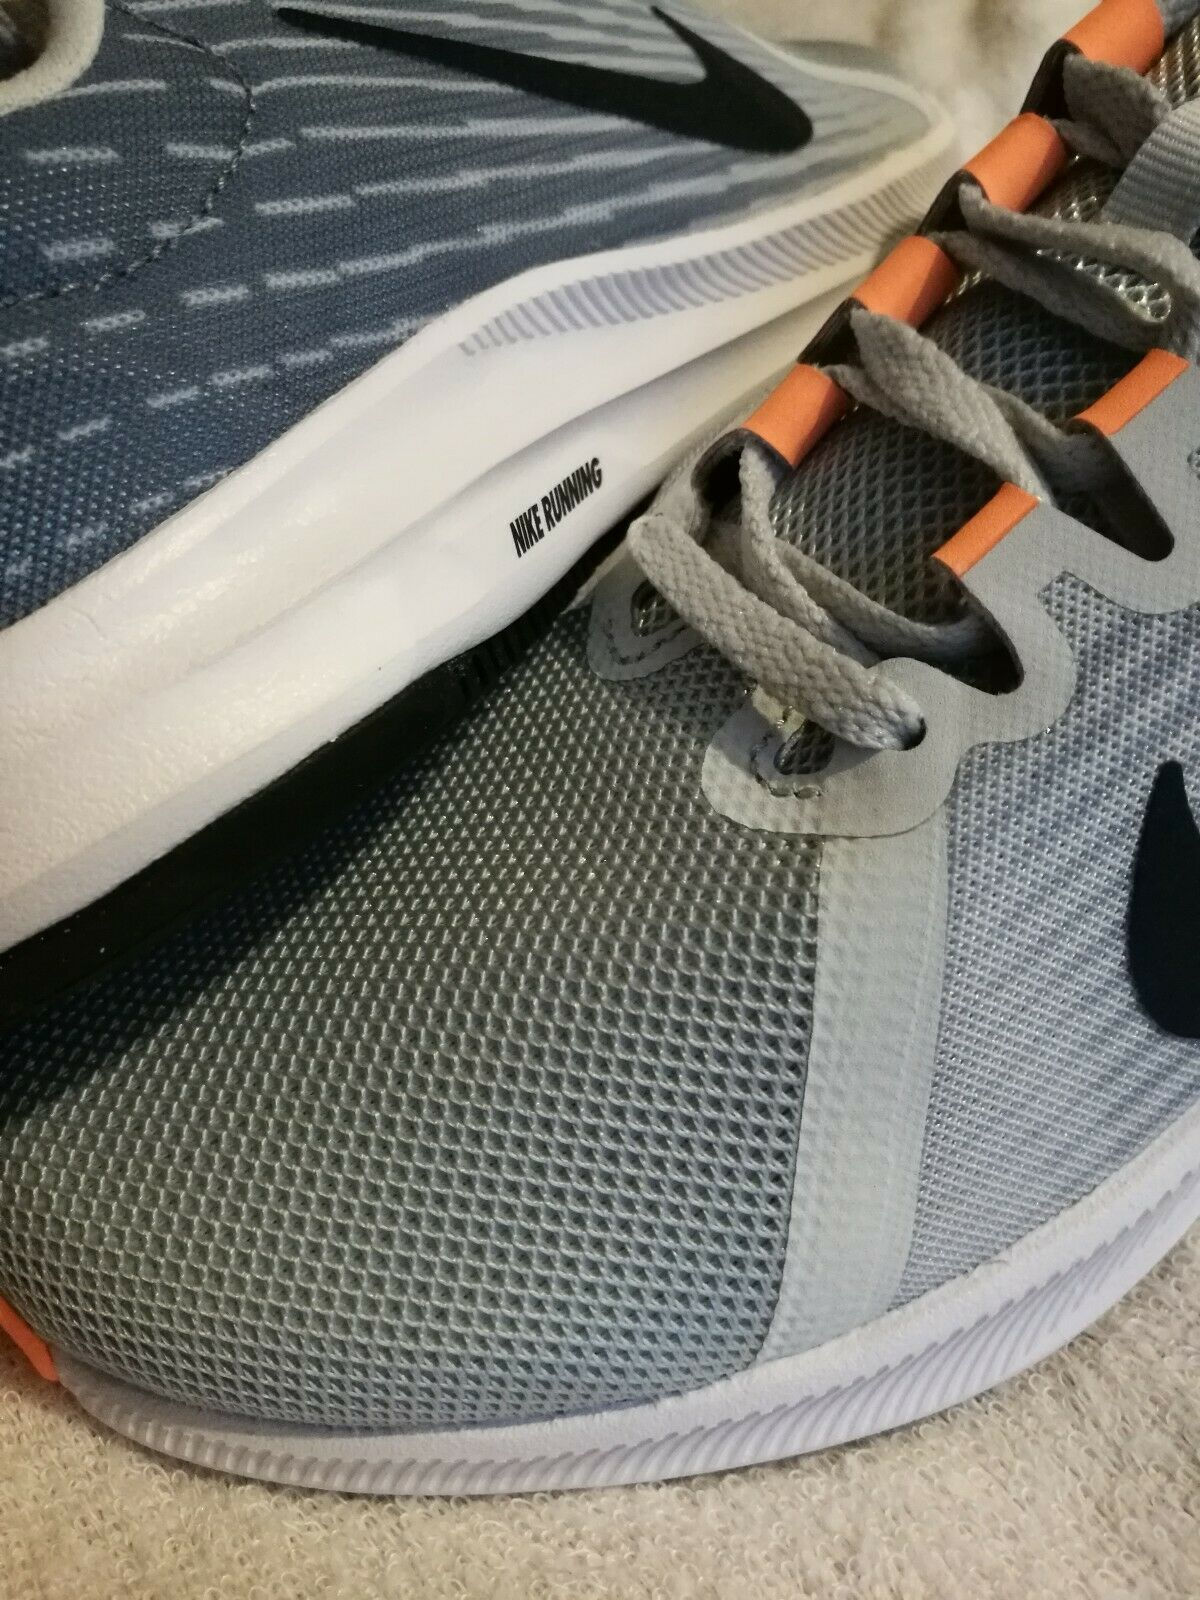 Nike Femme Baskets Downshifter 8 Taille UK 5.5 New in Box